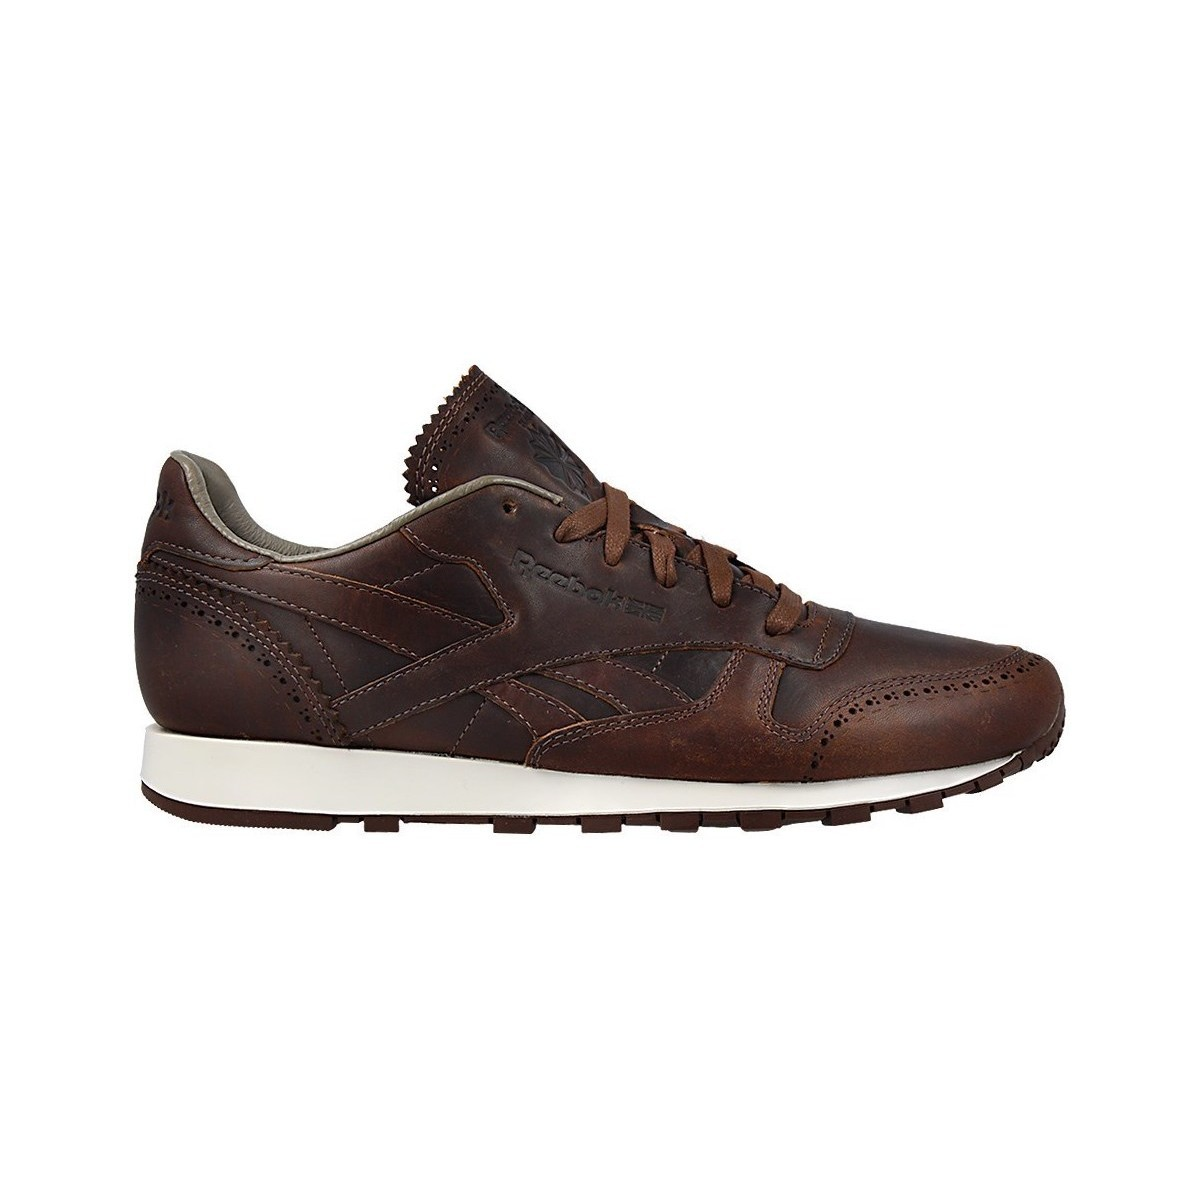 Reebok CL Leather Lux Horw Justgolden Brownch Marron